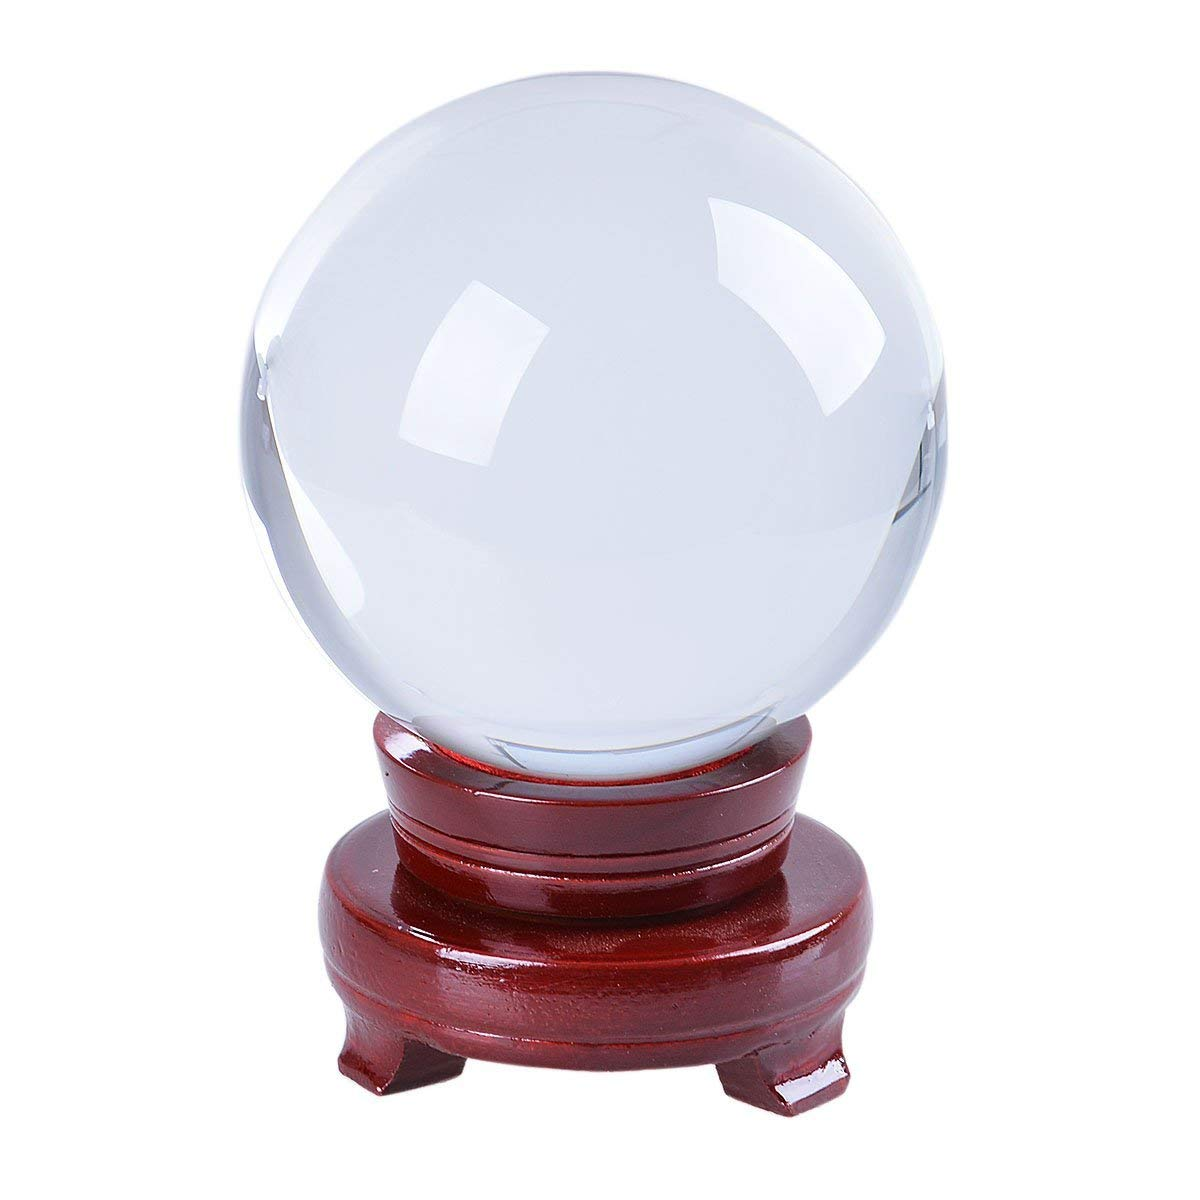 LONGWIN 120mm (4.7 inch) Large Crystal Divination Ball Photography Props Free Wooden Stand by LONGWIN